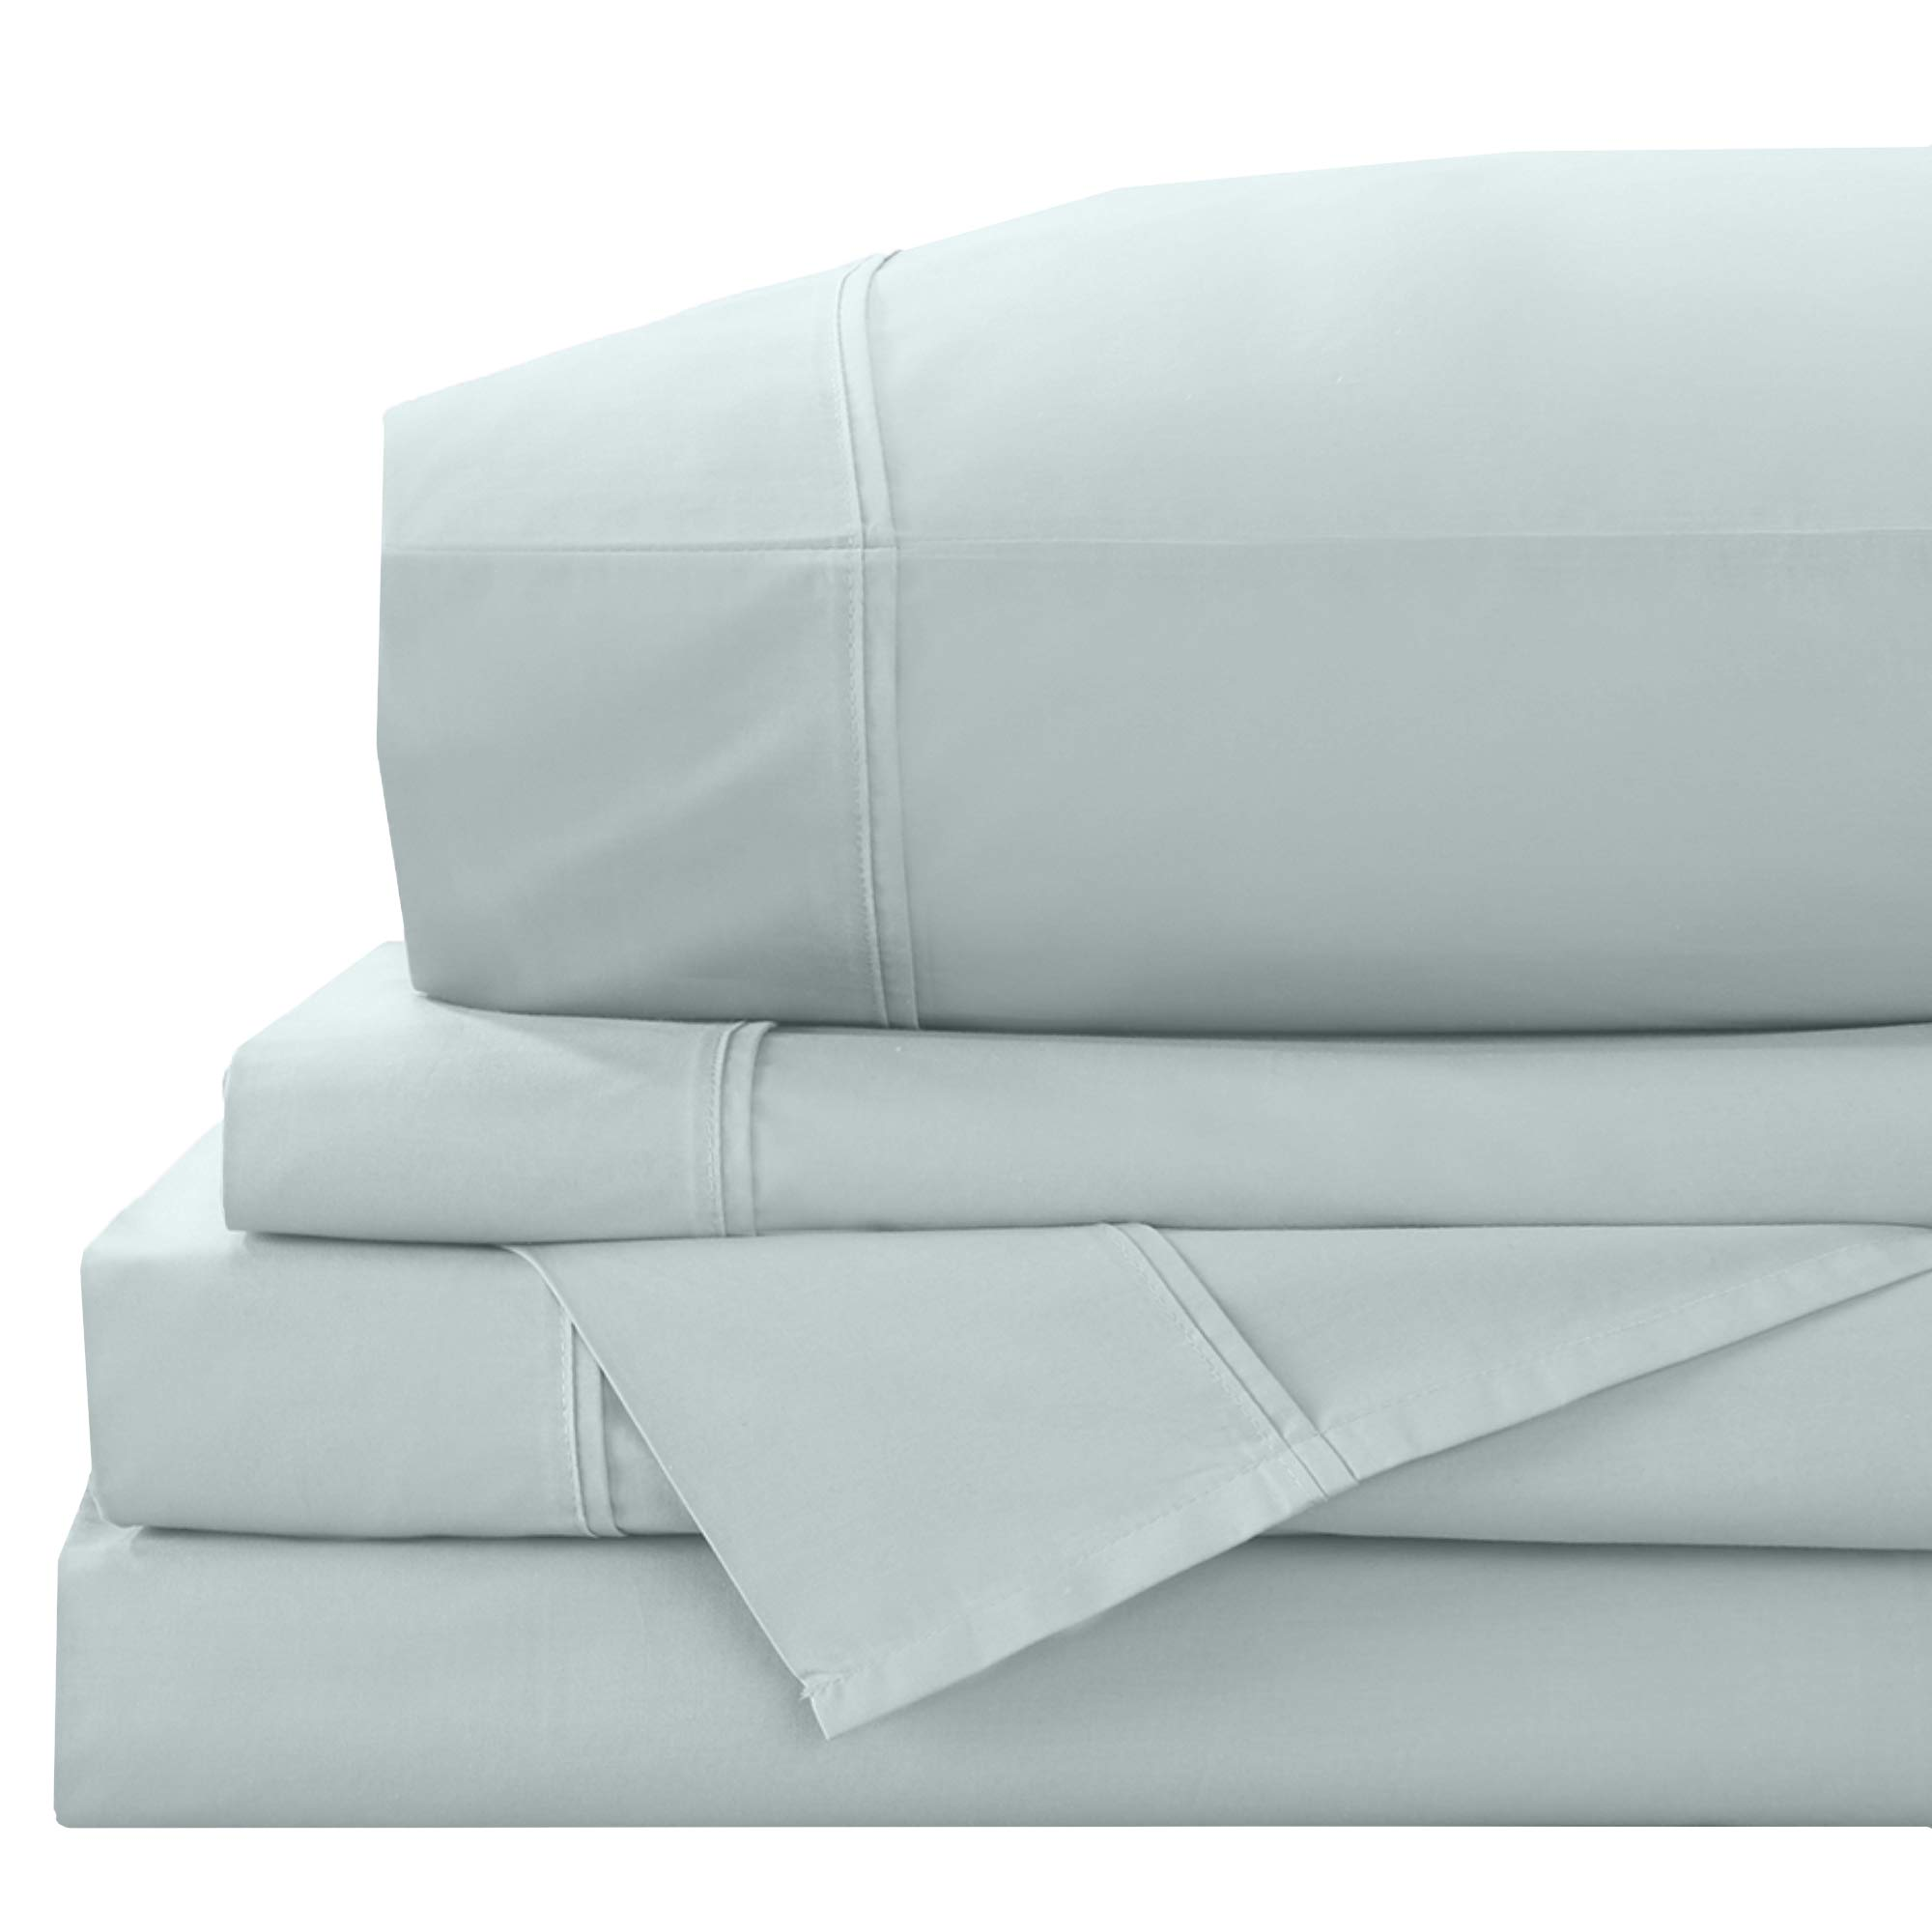 100% Cotton Percale Full Sheets. 4-Piece Long-Staple Combed Cotton. Breathable, Cool and Crisp Cotton Sheet Set. Includes 1 Flat, 1 Fitted Sheet & 2 Pillowcases. Zoe Collection (Full, Pastel Blue)